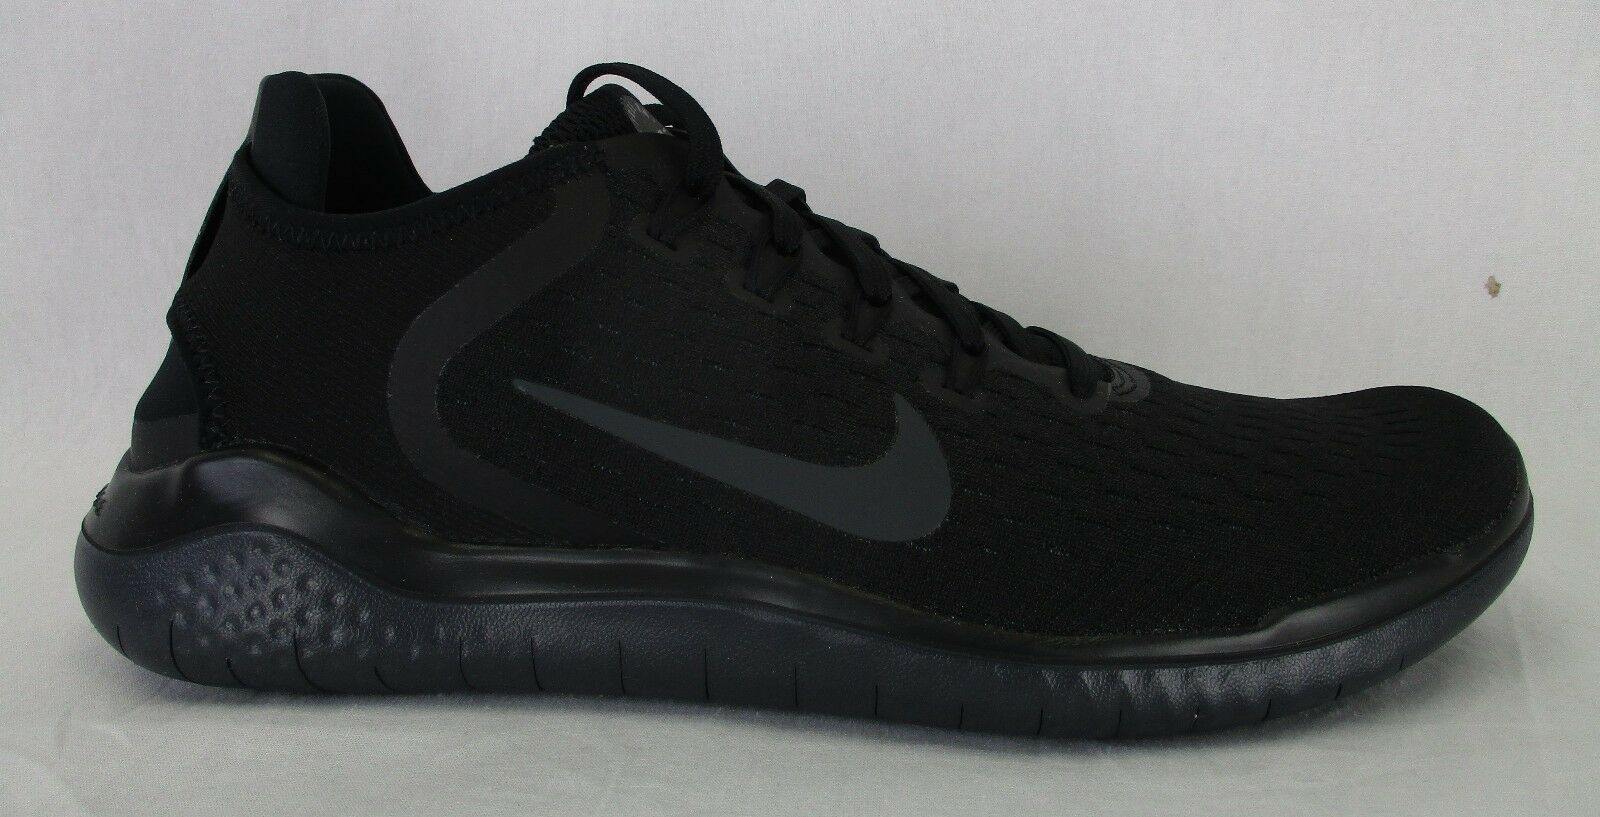 bc71a3f9f65c Nike Mens Mens Mens Free RN 2018 Running Shoes 942836 002 Black Anthracite  Size 11